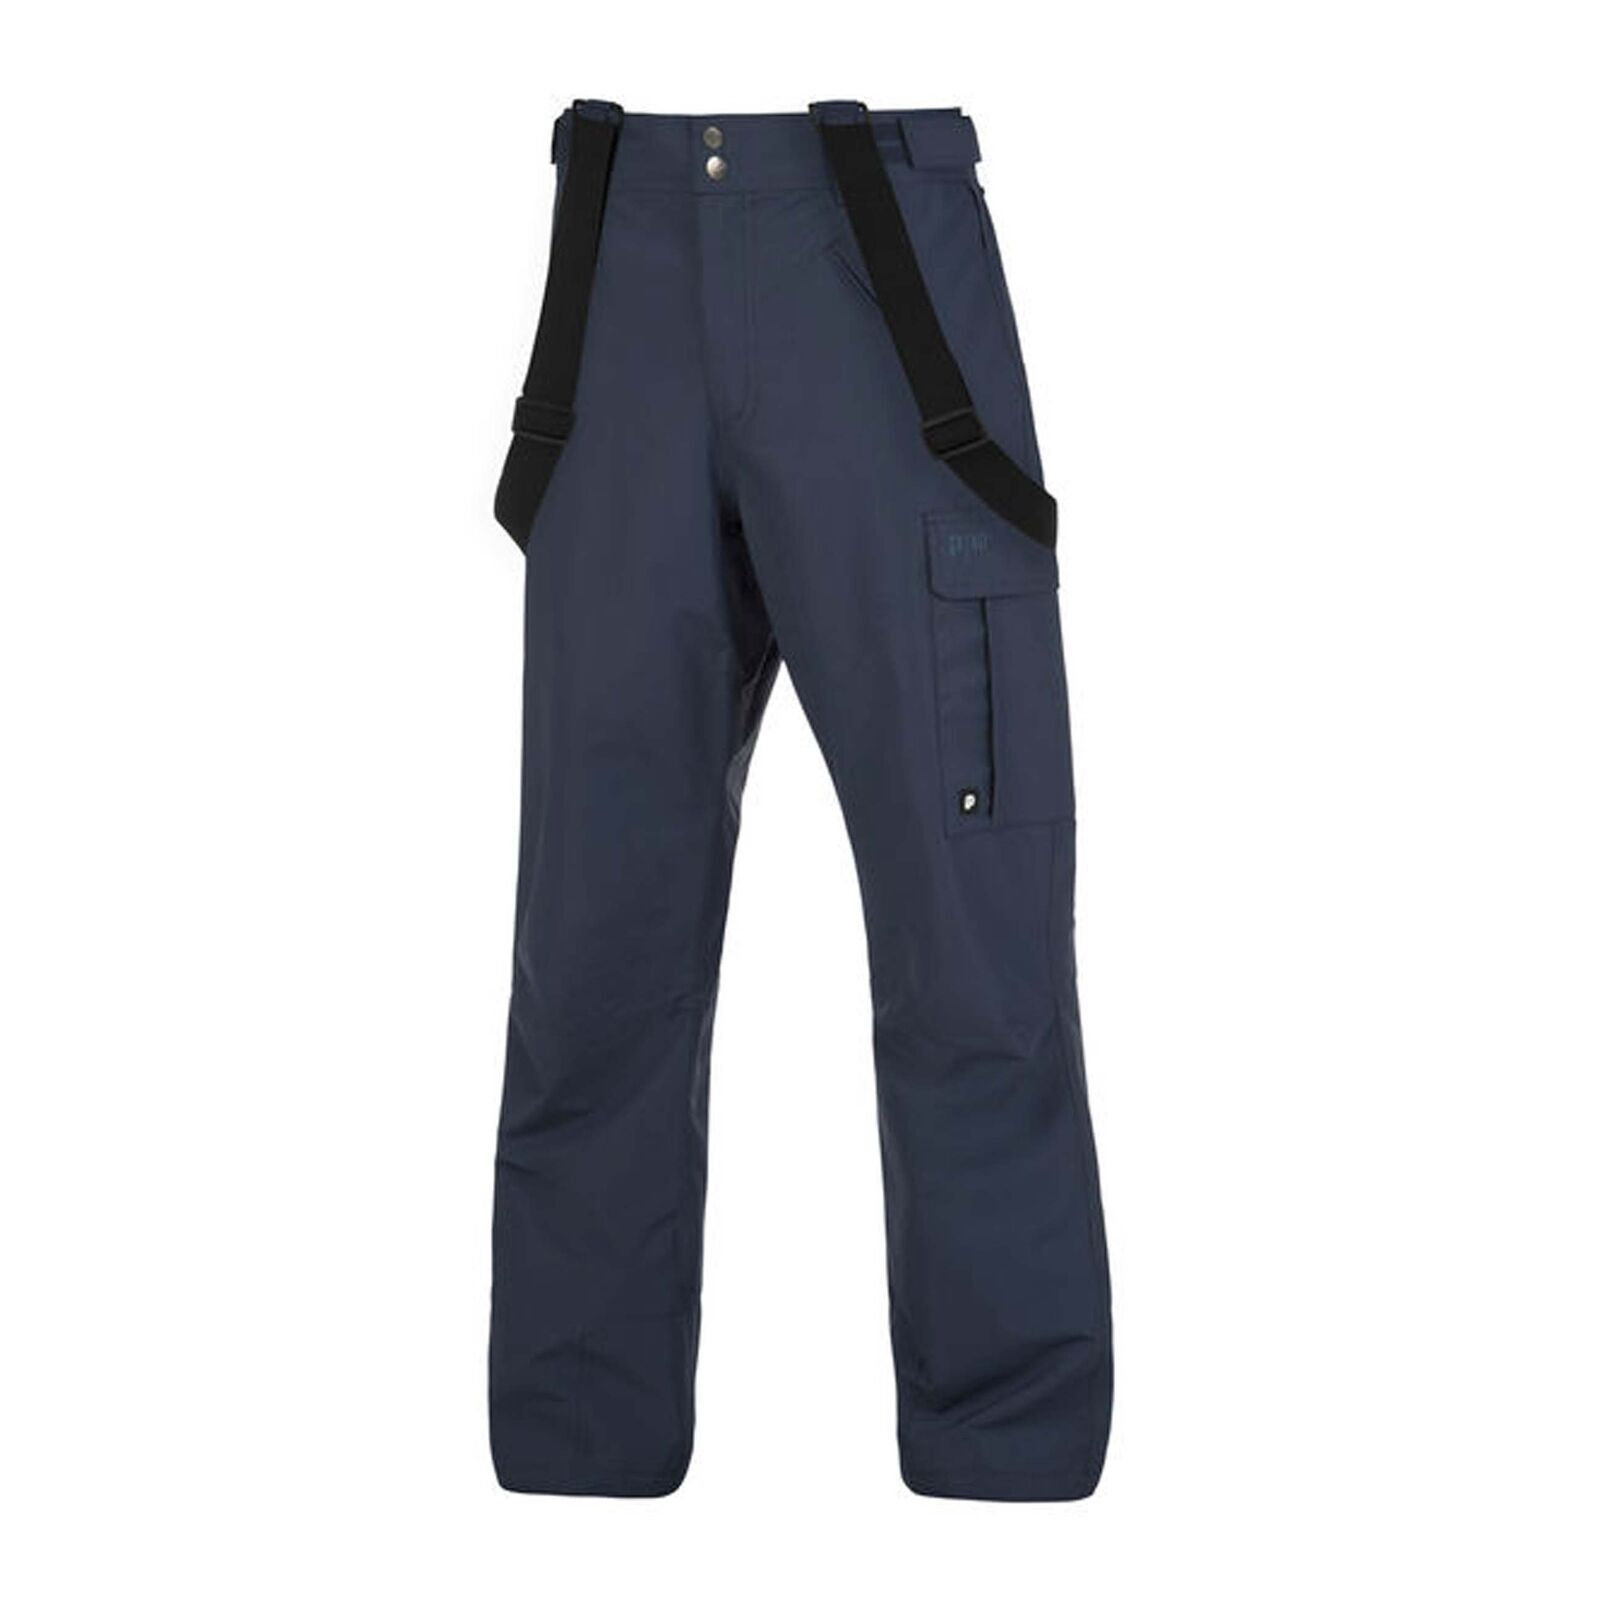 Predest Mens Denysy Ski Snowboard Snow Pants Navy bluee